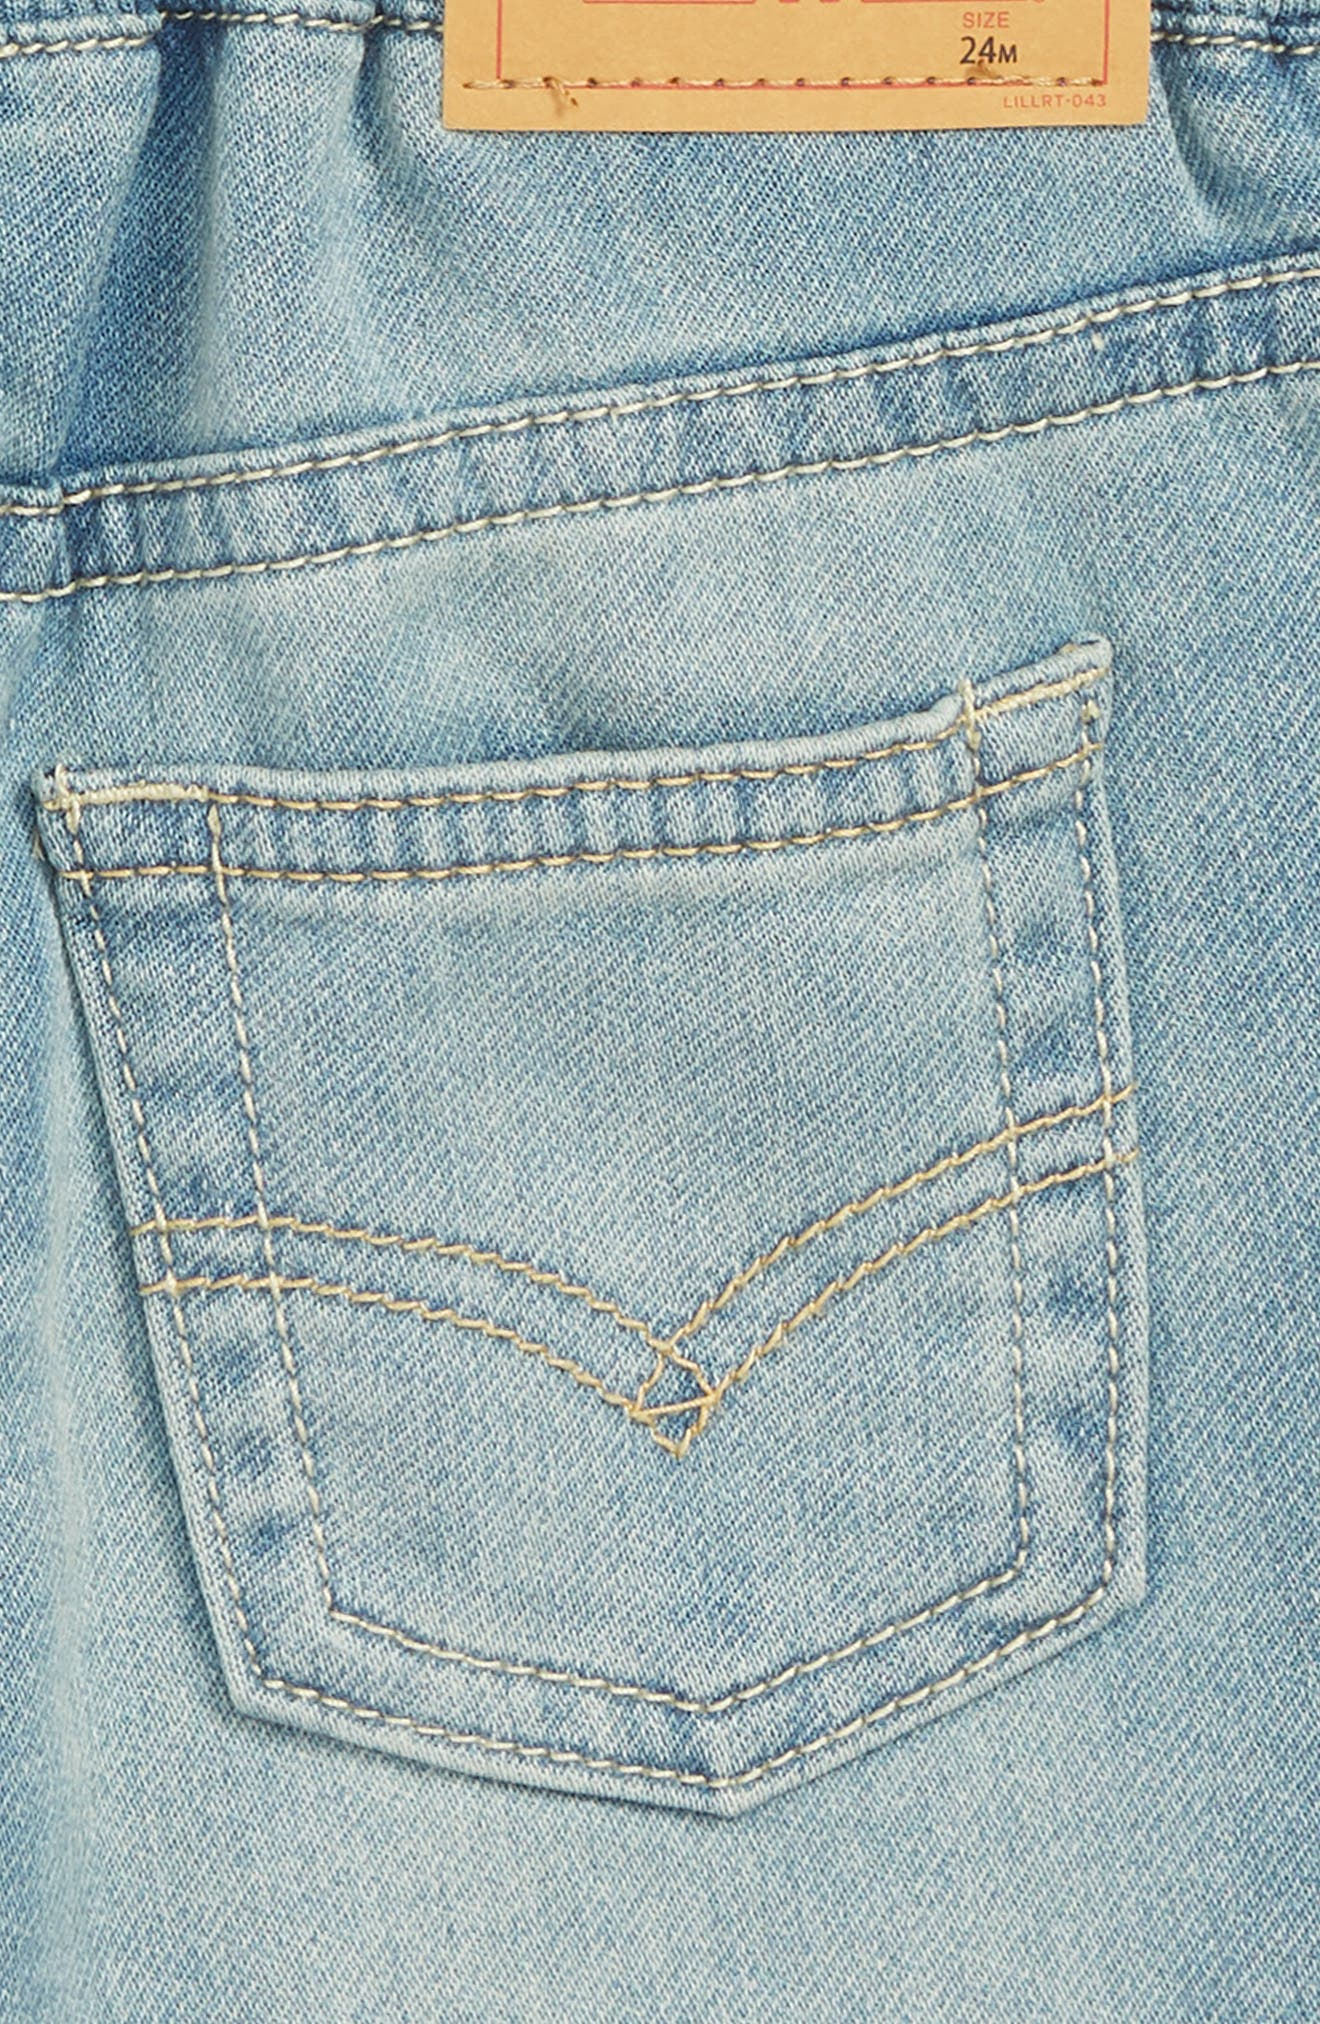 Knit Denim Shorts,                             Alternate thumbnail 3, color,                             424